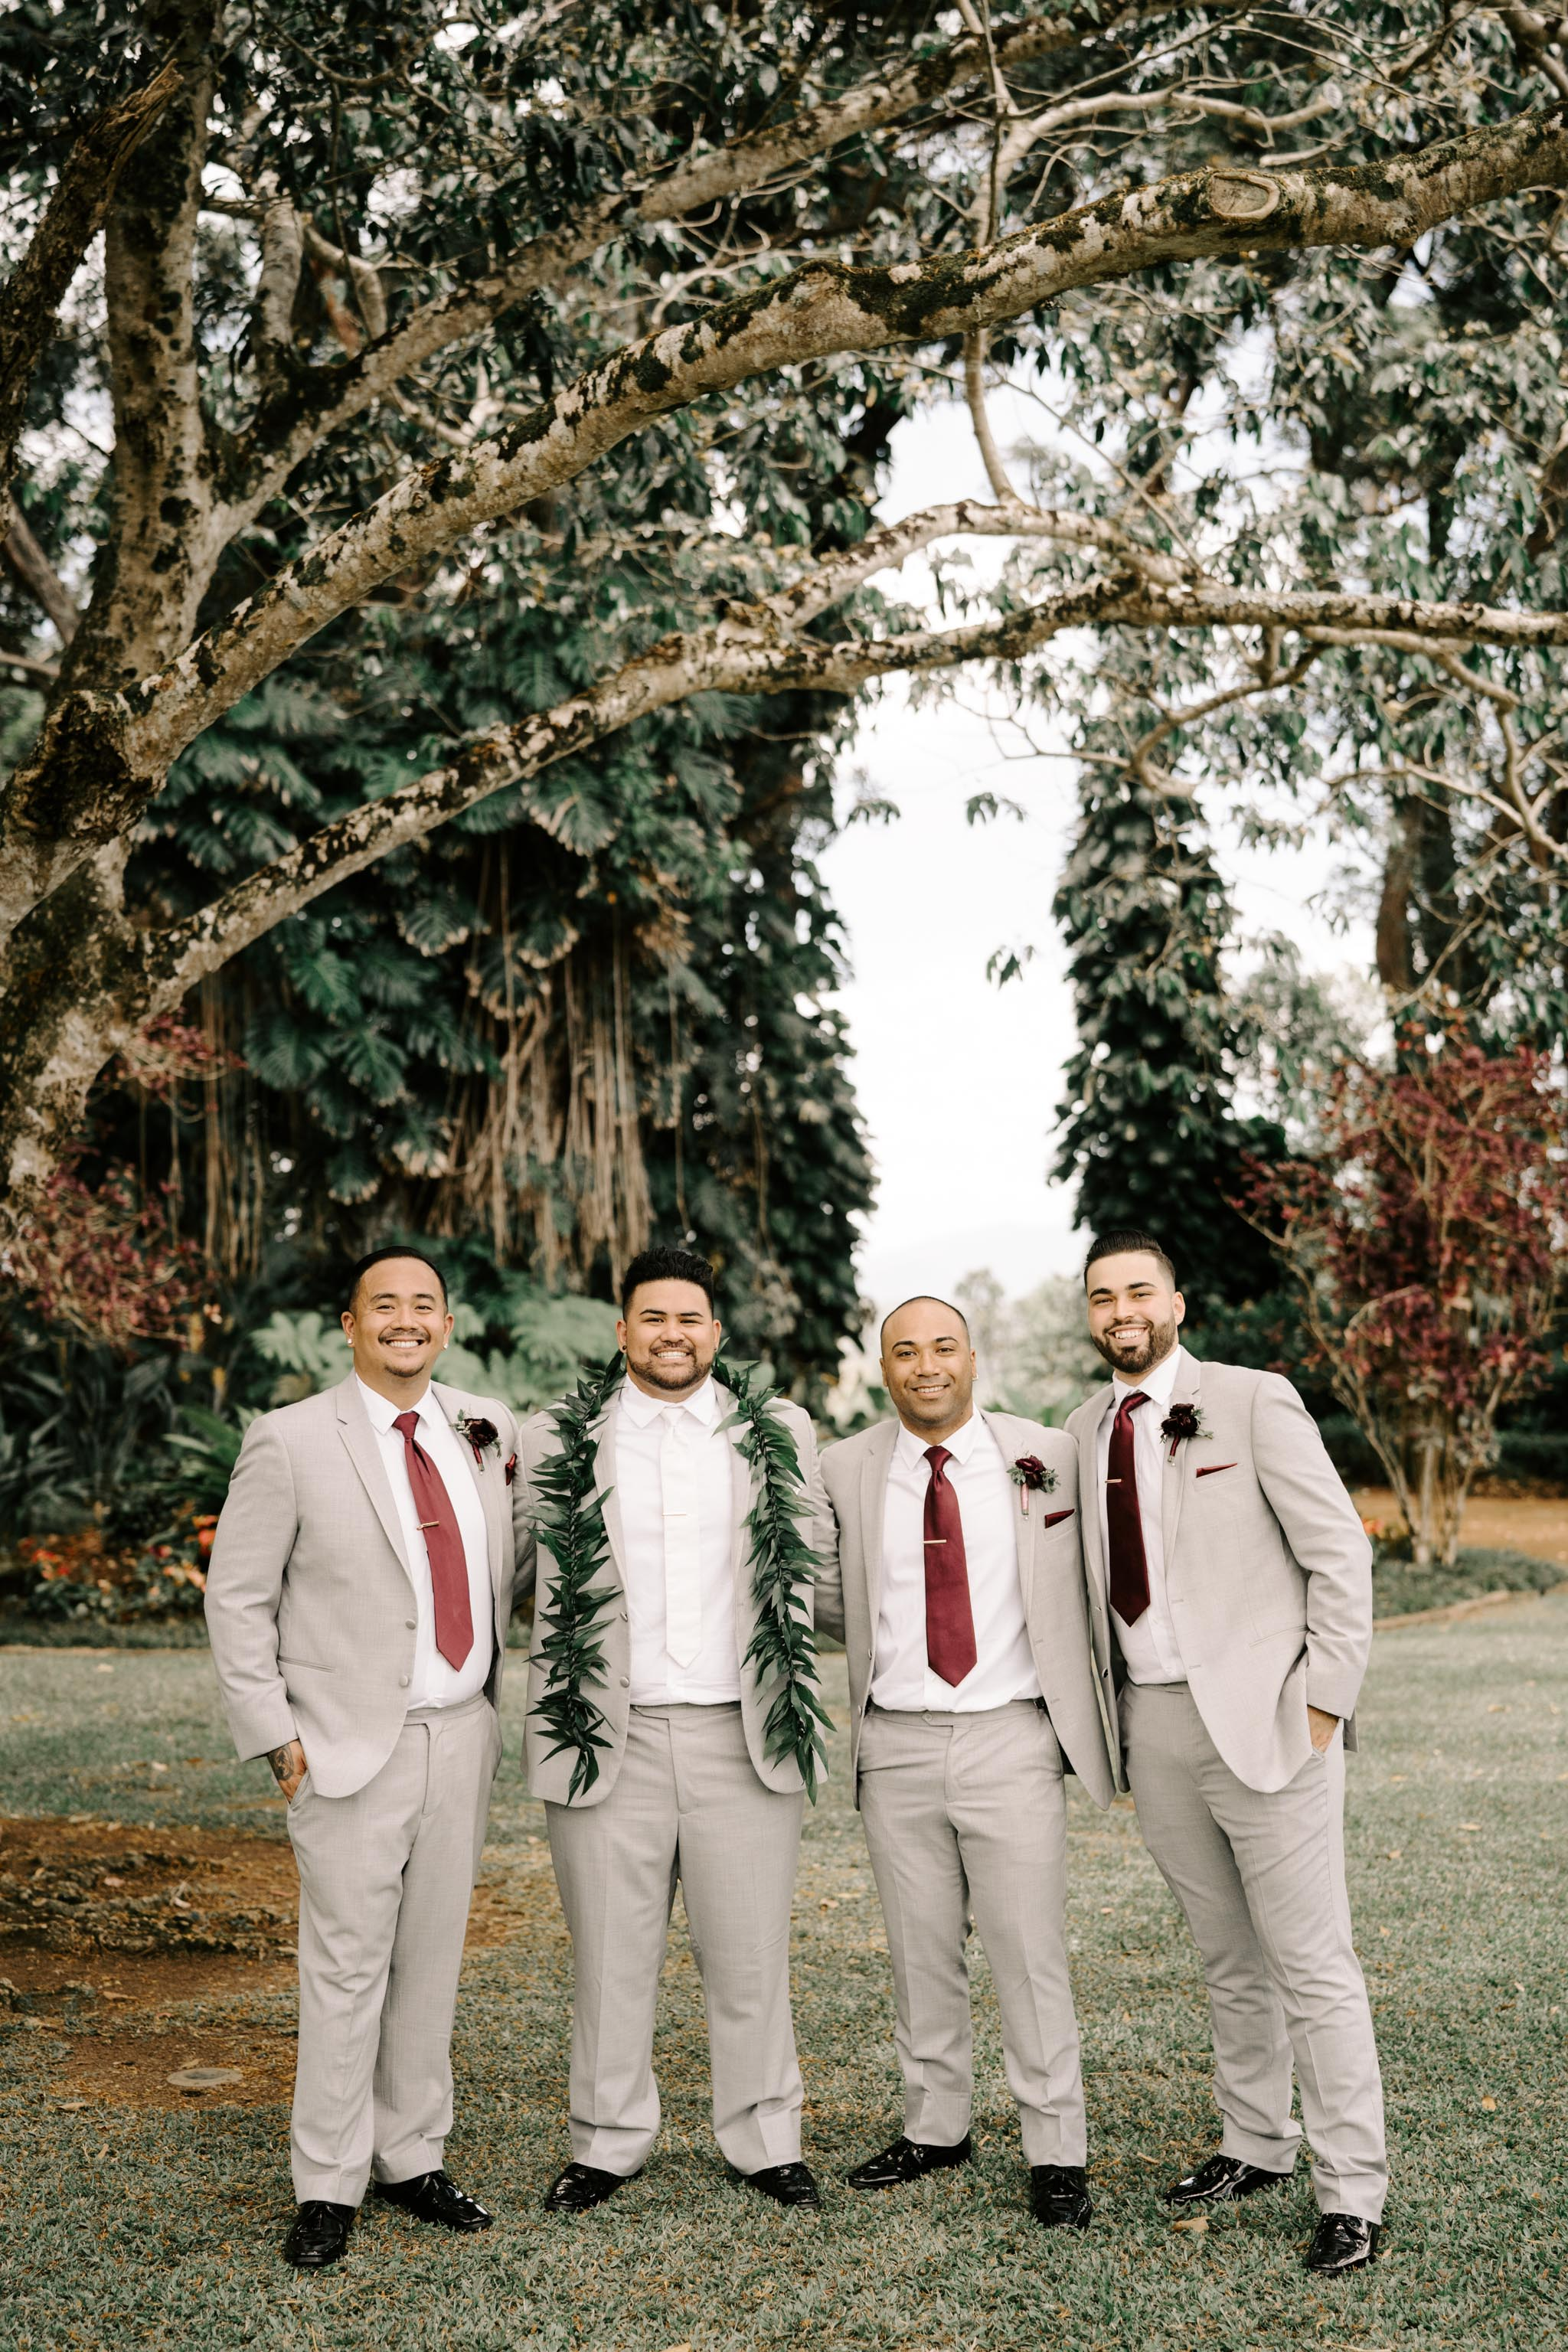 Groom and Groomsmen Photo- Sunset Ranch Hawaii Wedding By Oahu Wedding Photographer Desiree Leilani